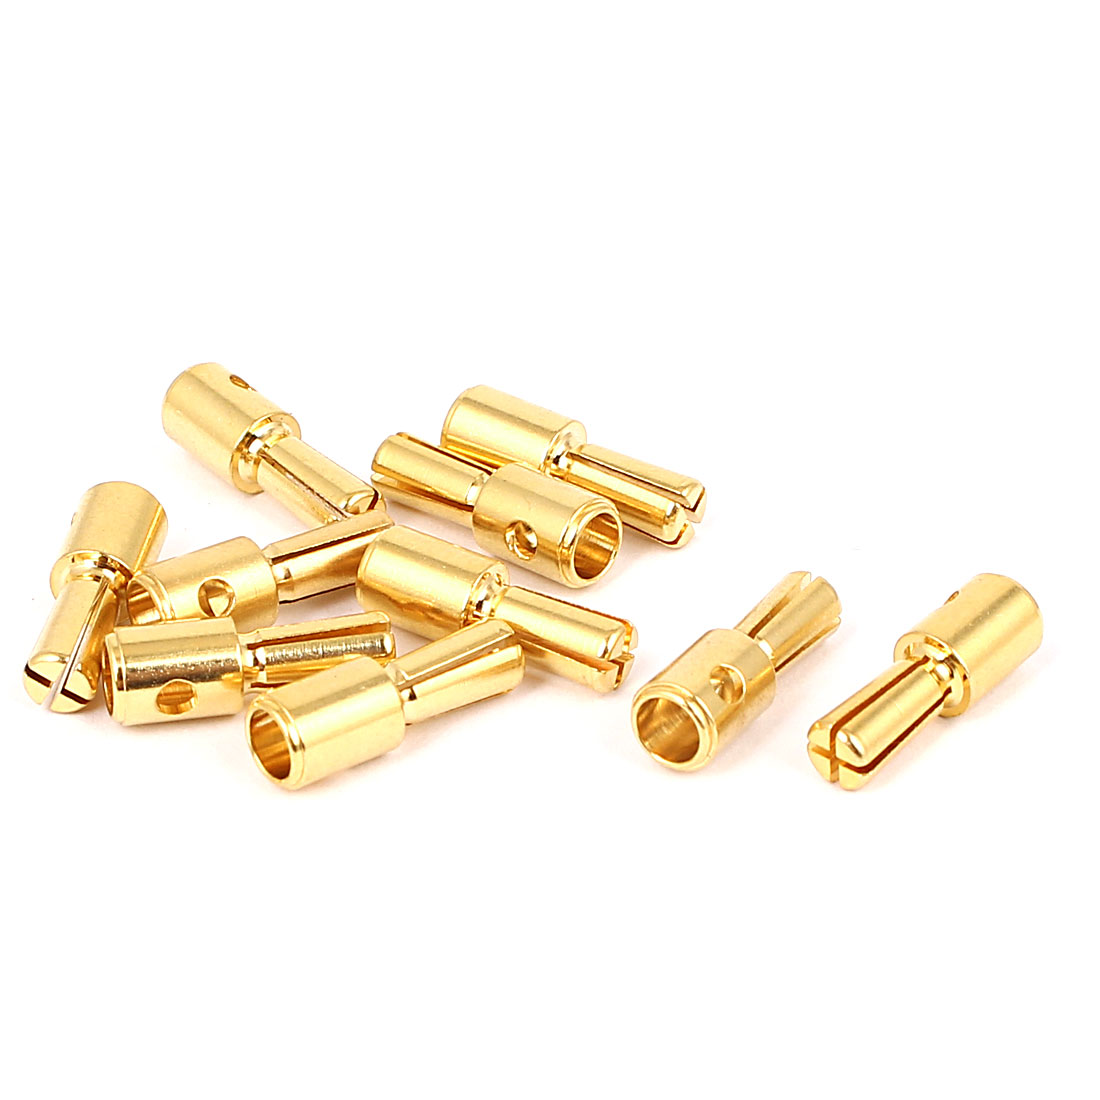 10pcs 4mm Gold Tone Metal Cross Head Banana Male Connector Adapter for RC Model Battery